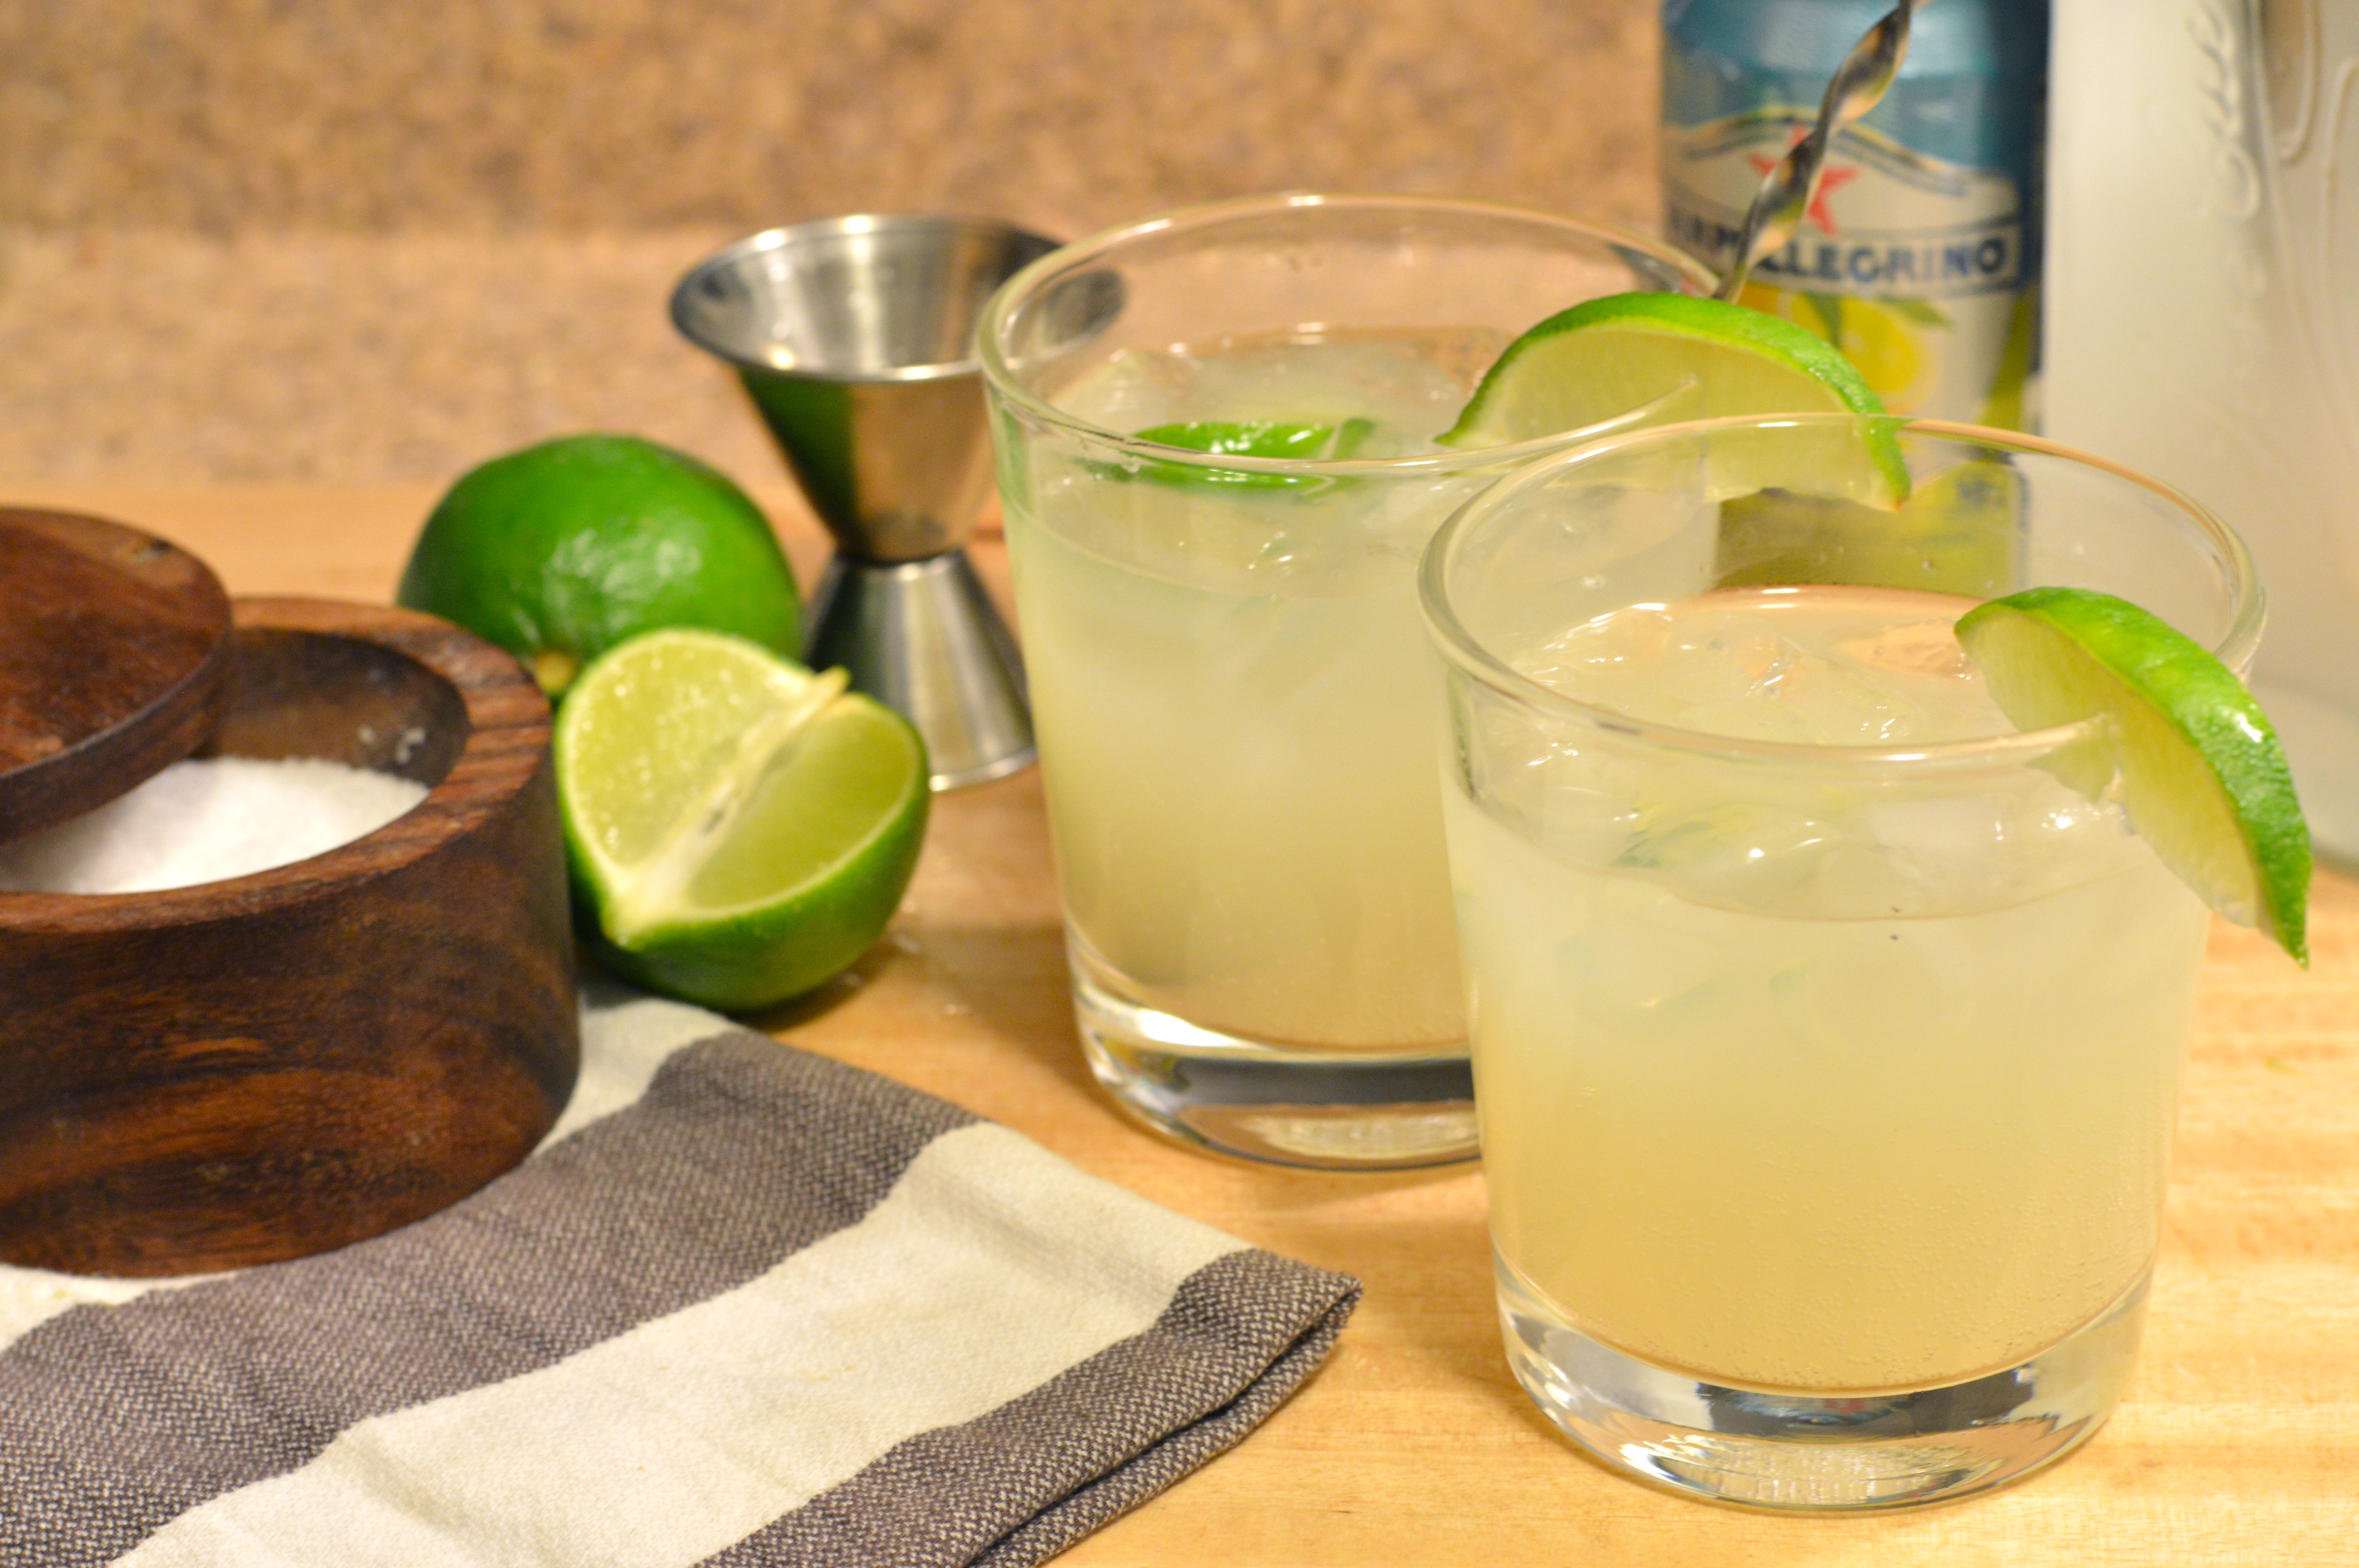 tequila with squirt The paloma (Spanish for